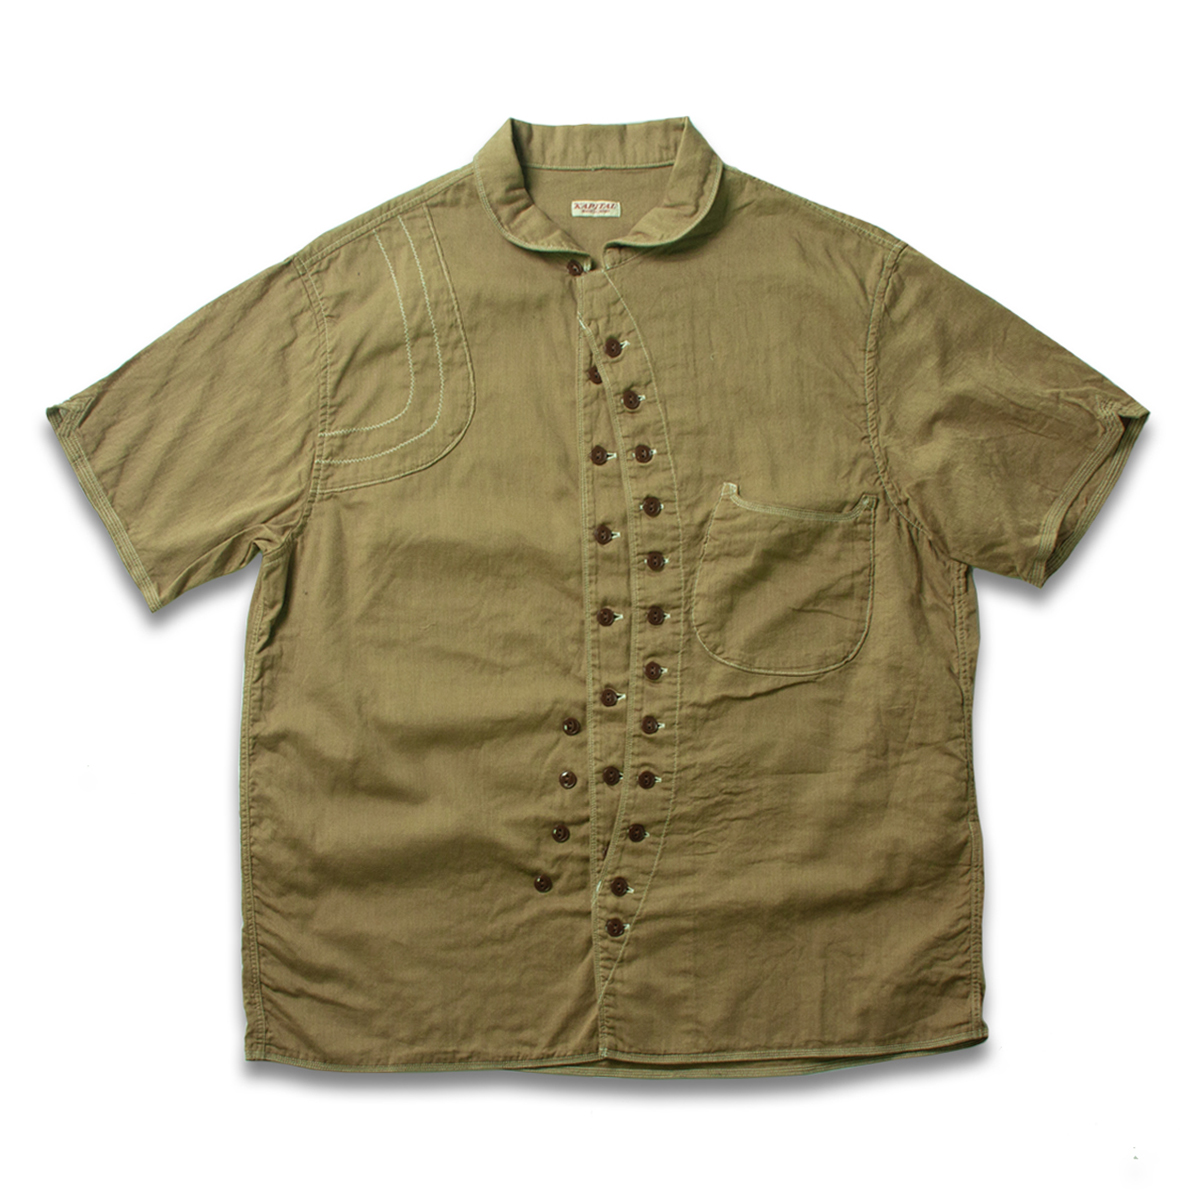 [KAPITAL] SINGLE-LAYER GAUZE SAFARI ALOHA SHIRT 'GOLD'